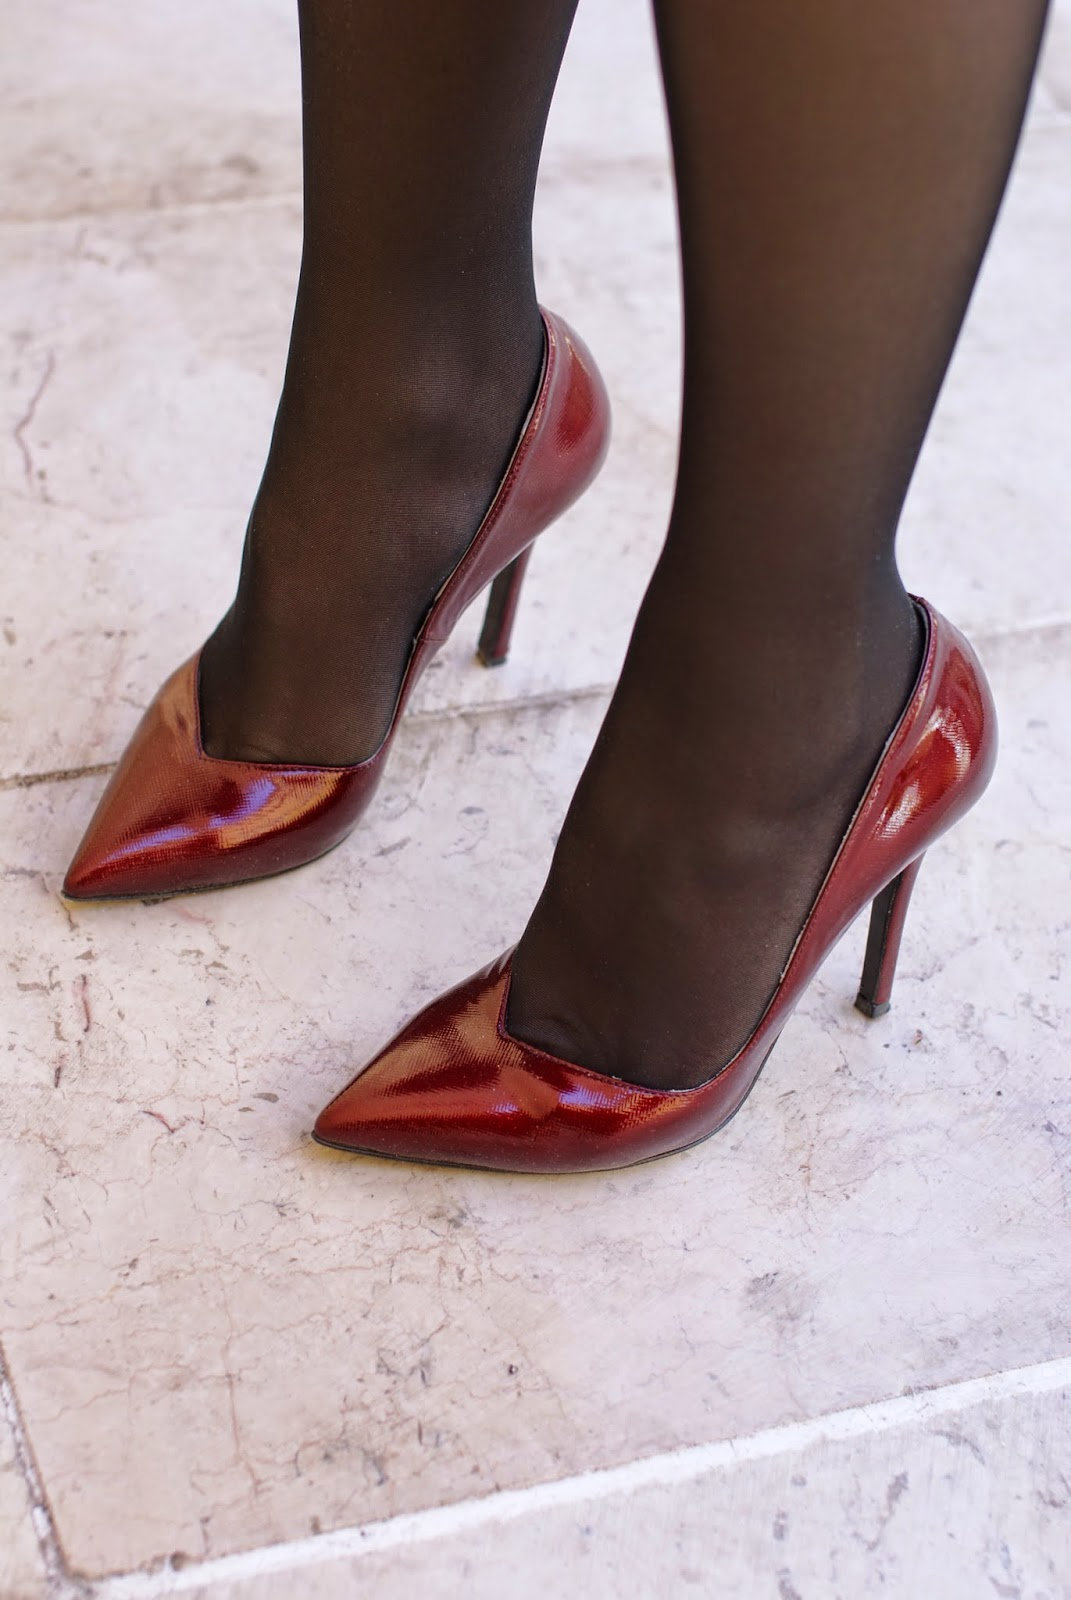 Red patent leather stiletto pumps worn with black sheer tights